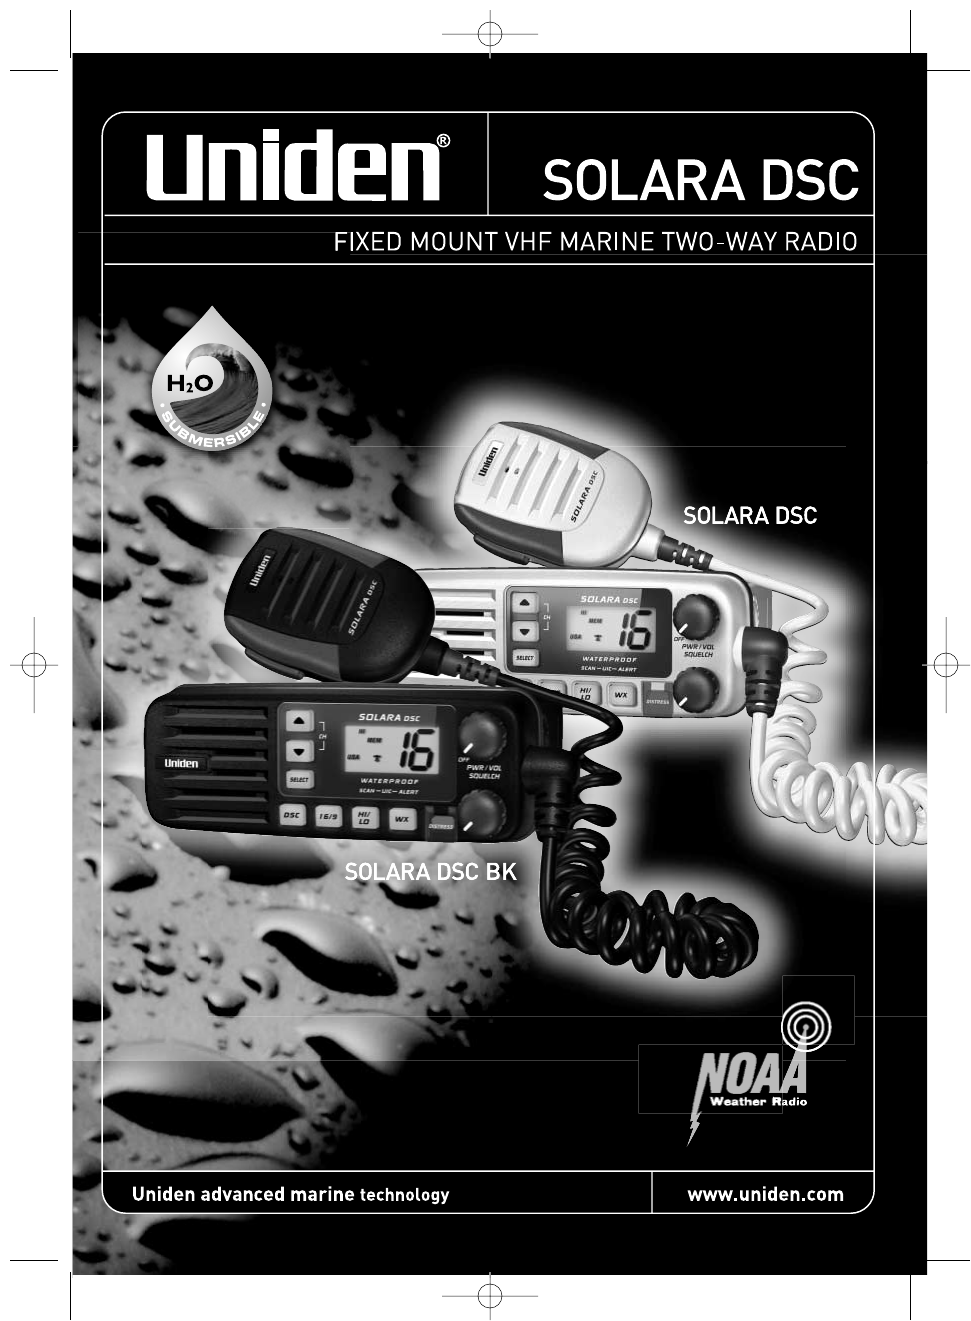 f640053b 7477 9314 45d5 af19adaaa2a4 bg1 uniden two way radio solara dsc user guide manualsonline com uniden solara dsc wiring diagram at mifinder.co